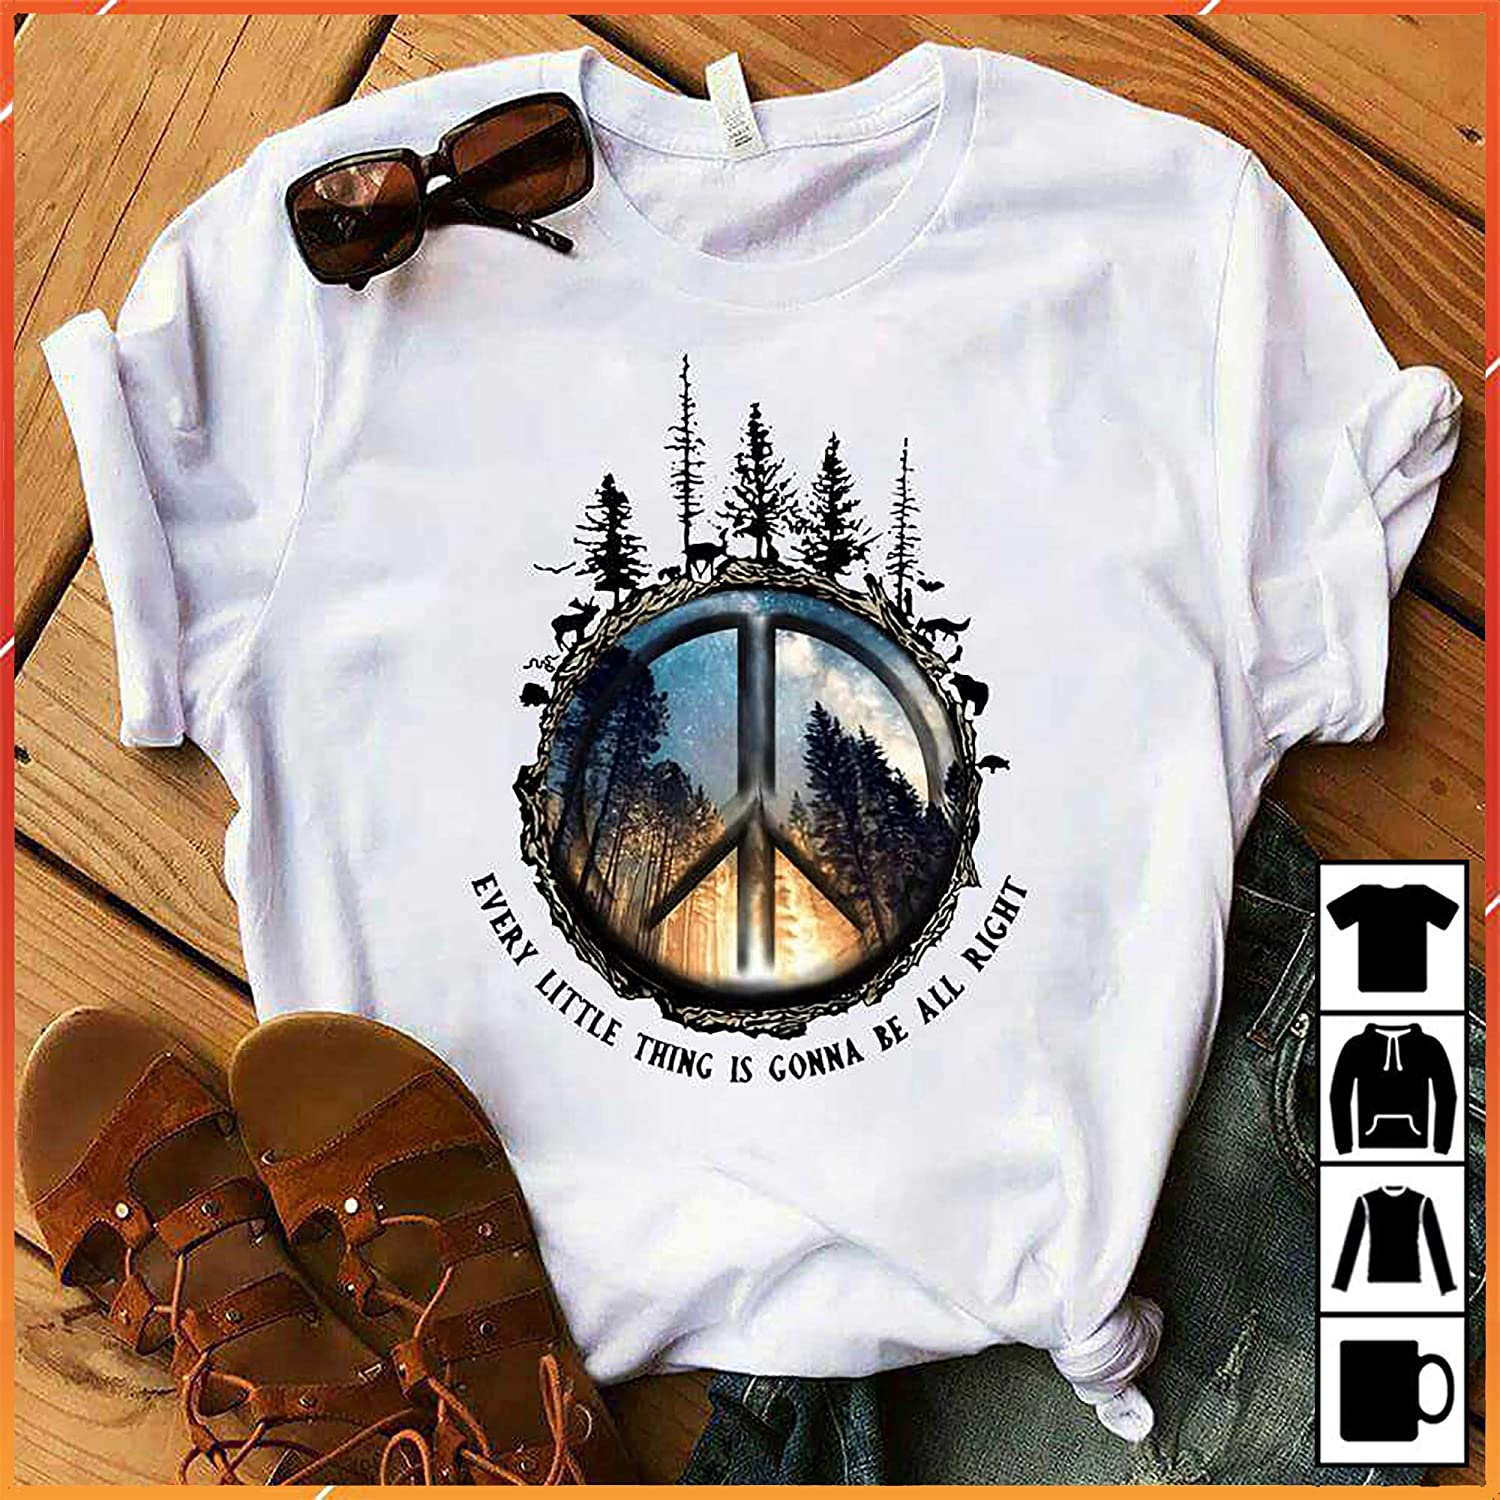 Clothing Tops & Tees Run Away And Live In the Woods T-Shirt Long ...